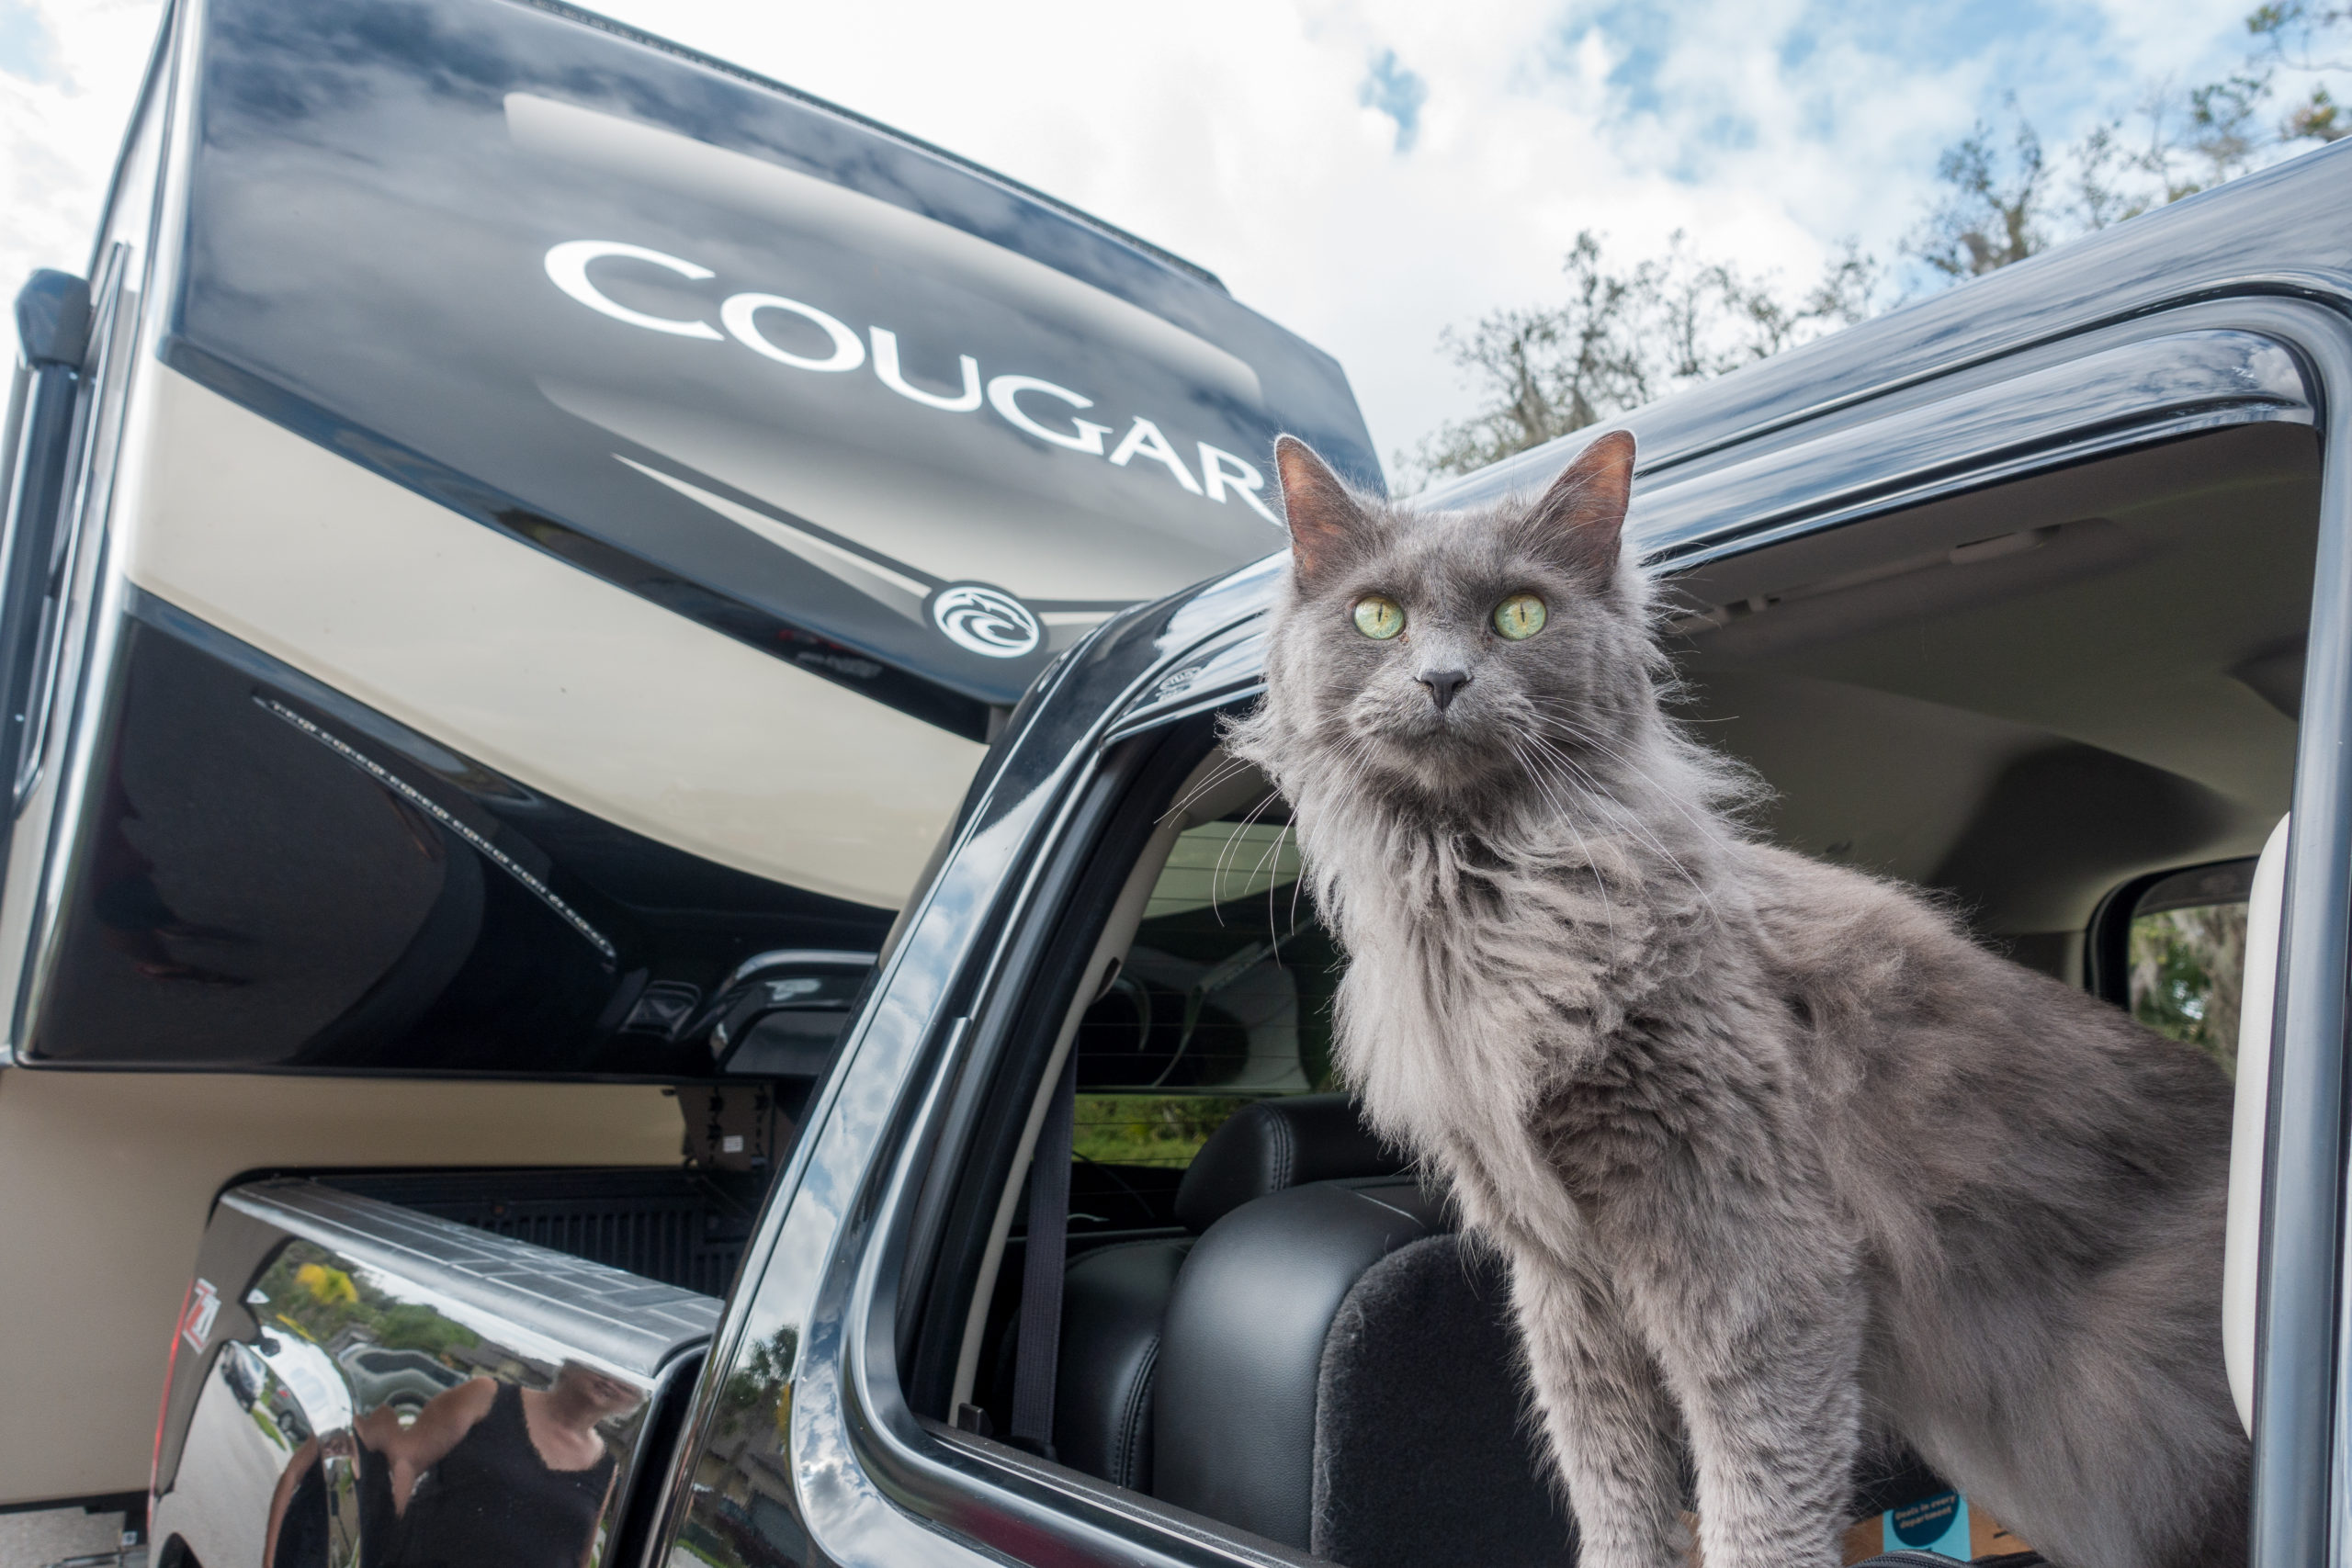 Vodka the cat, hanging out of the truck window, ready for adventure